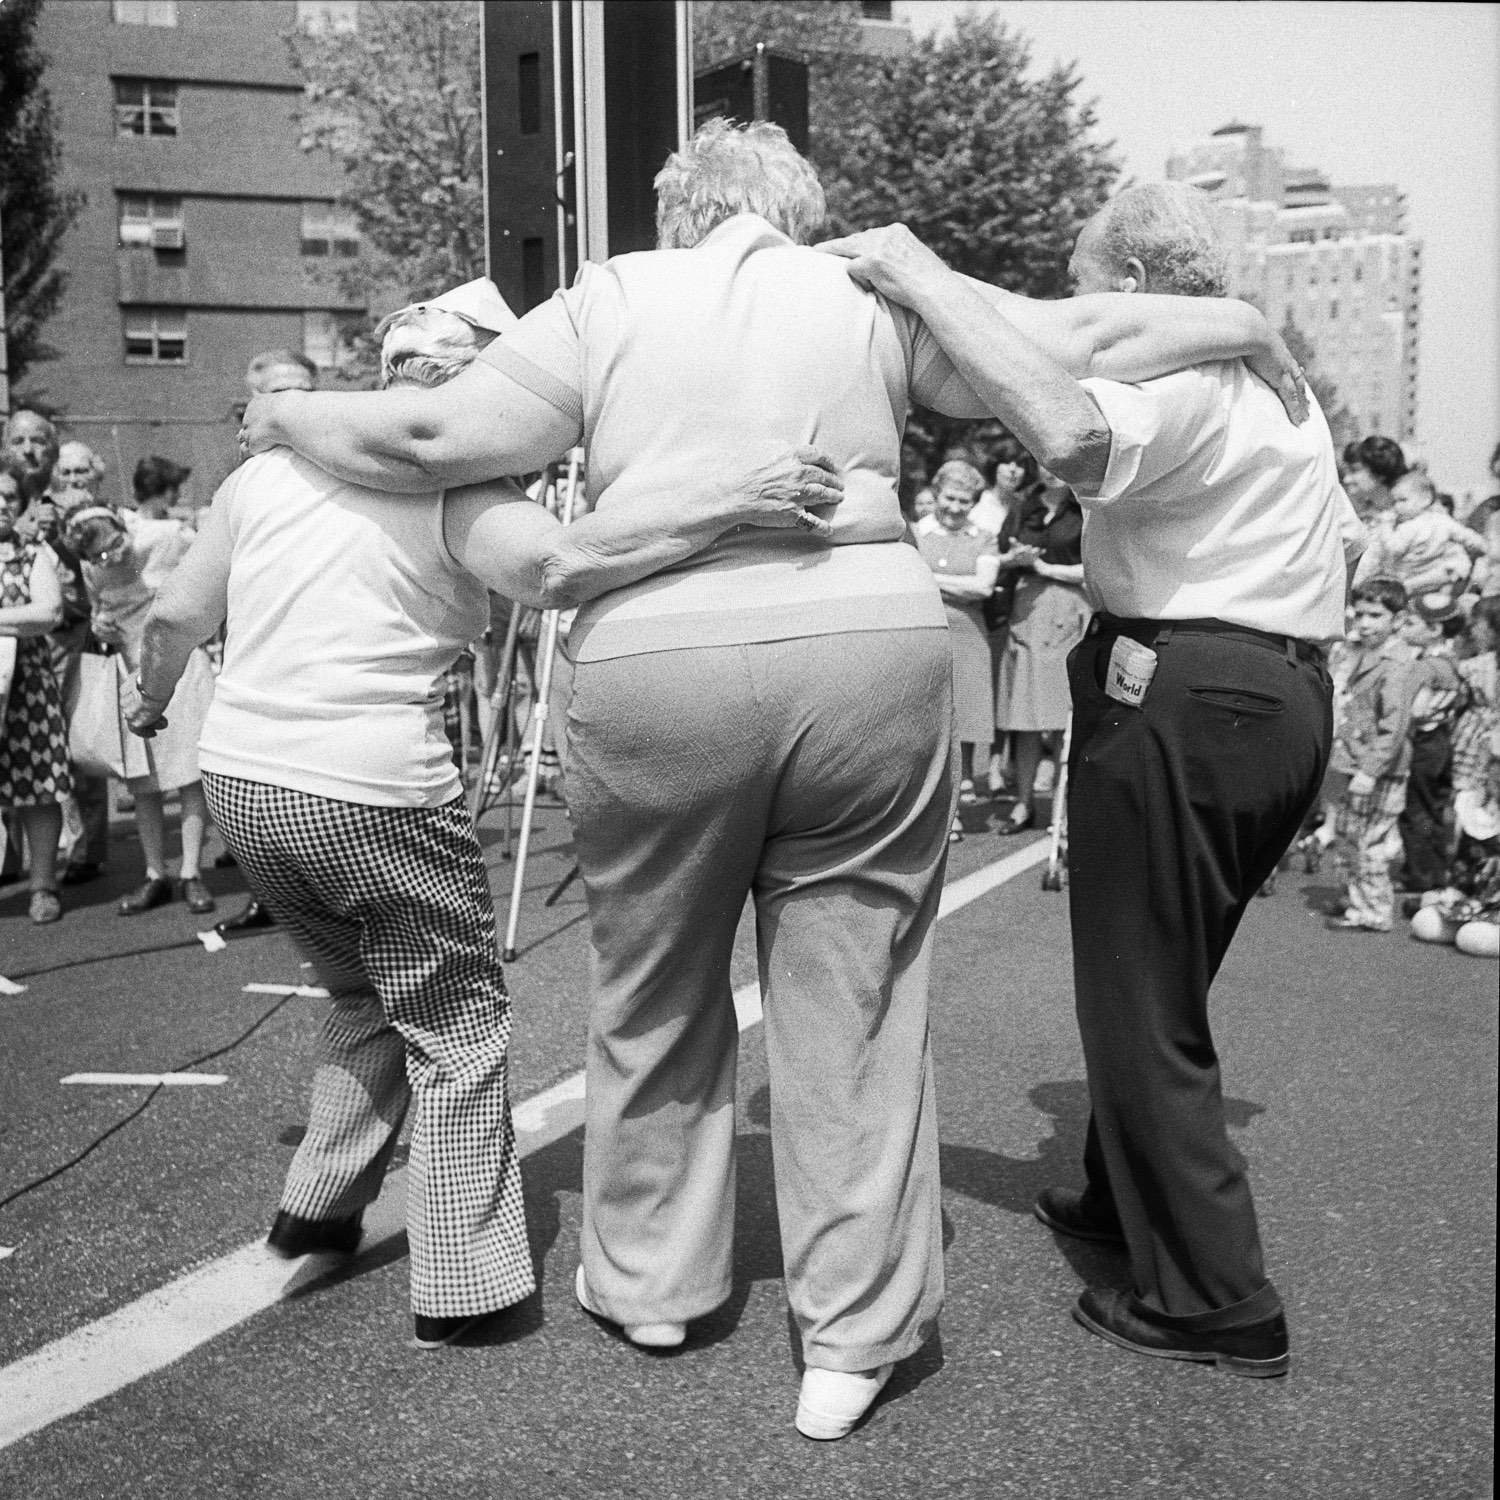 Dancing at the Lower East Side Street Festival NY, NY June 1978